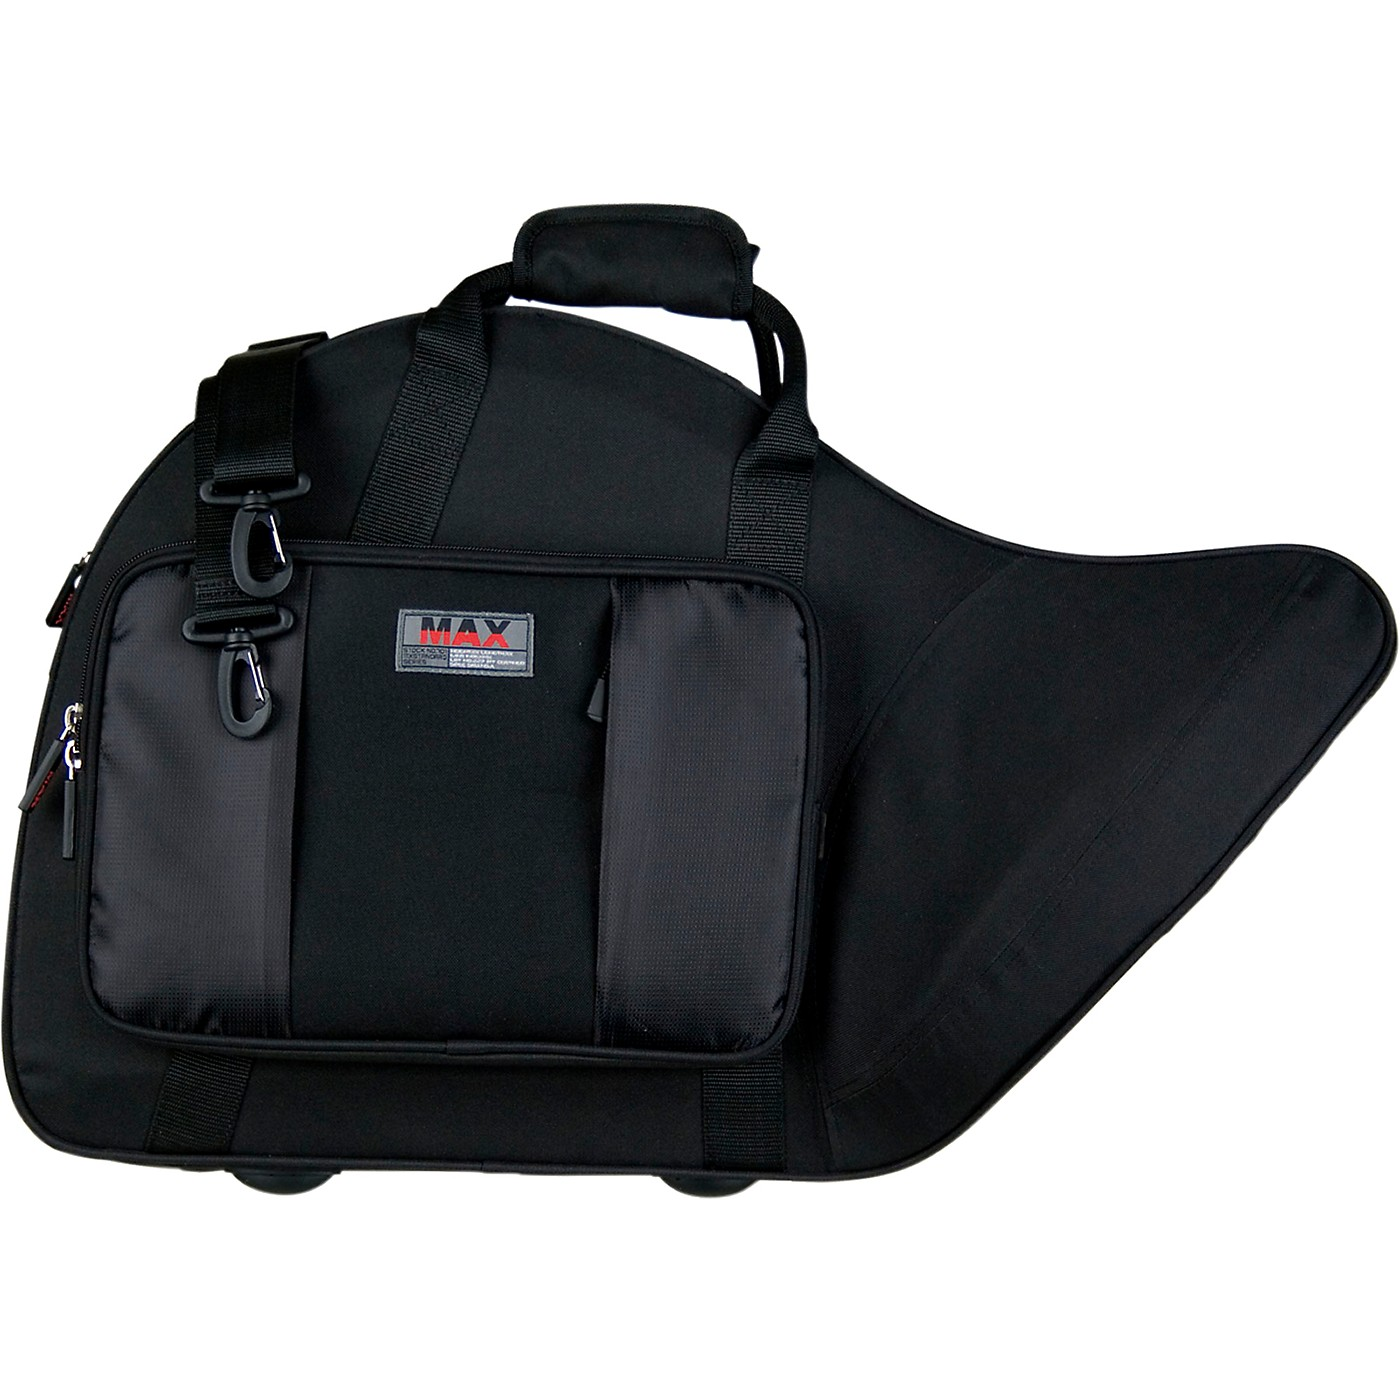 Protec MAX Contoured French Horn Case thumbnail